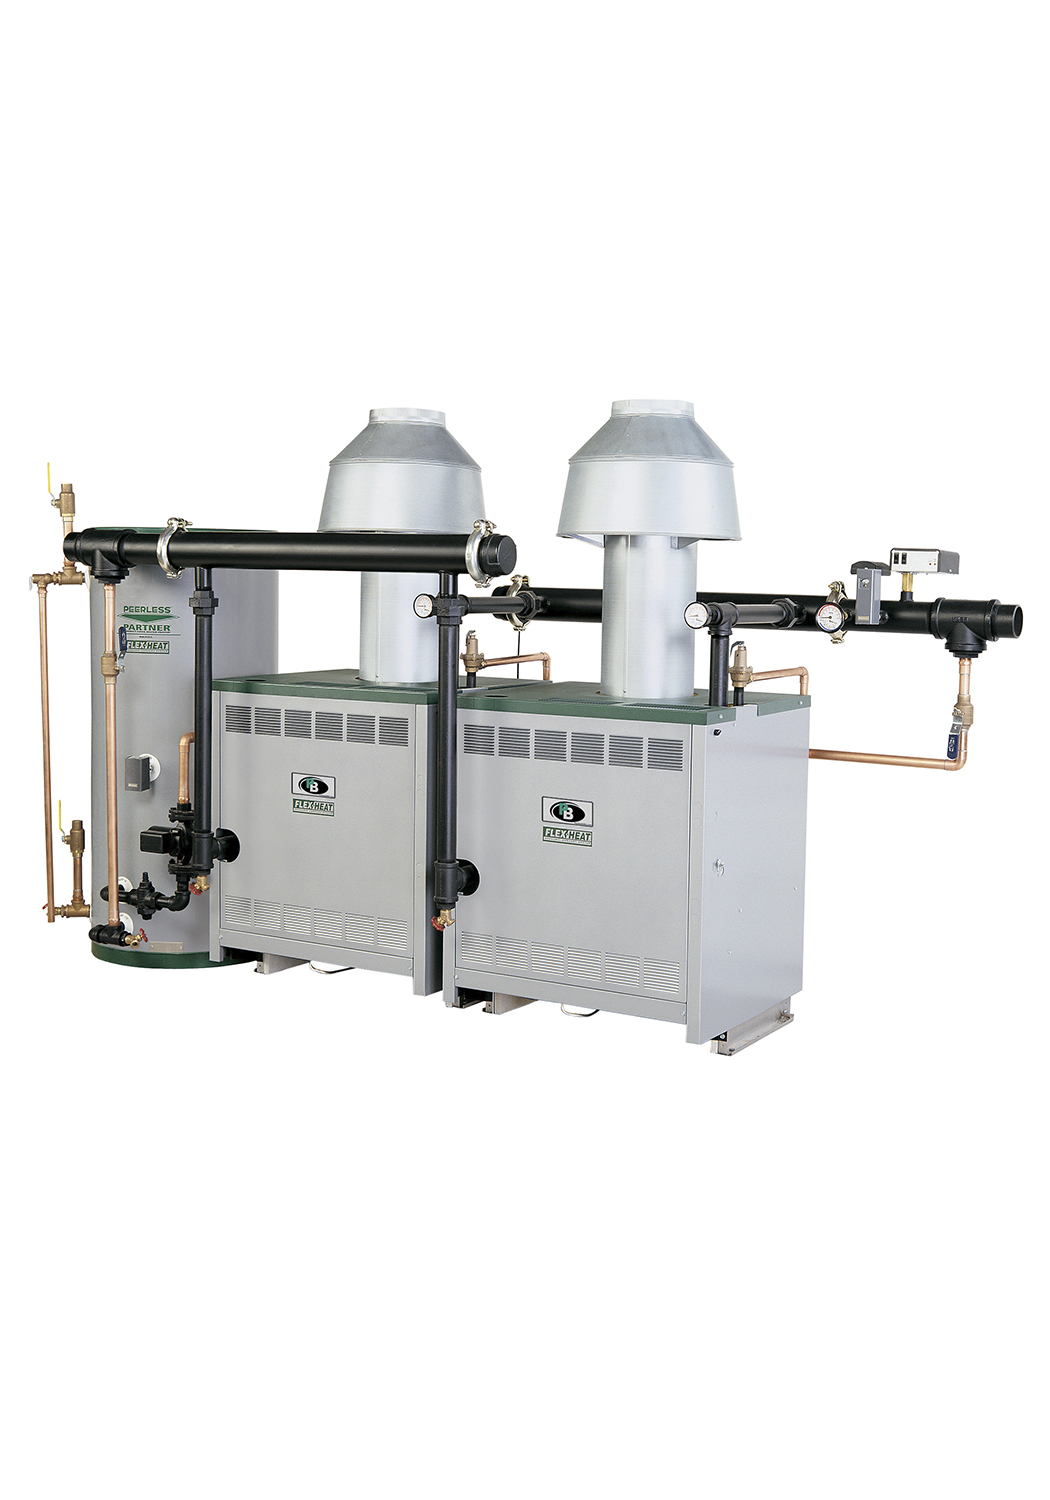 Pretty gas boiler heating system photos electrical and for Gas home heating systems